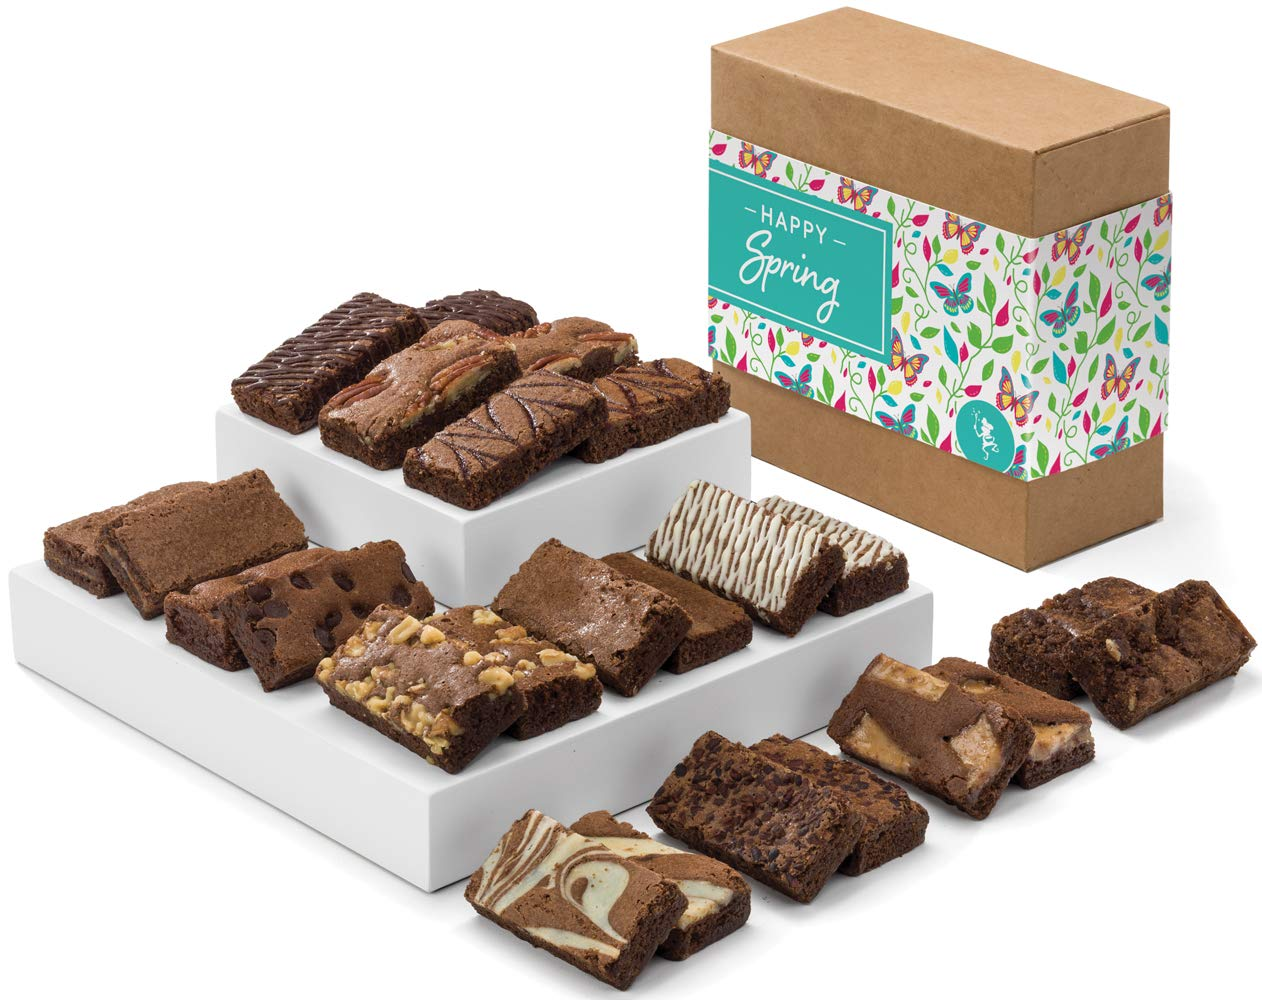 Fairytale Brownies Spring Sprite 24 Gourmet Chocolate Food Gift Basket - 3 Inch x 1.5 Inch Snack-Size Brownies - 24 Pieces - Item CR224SP